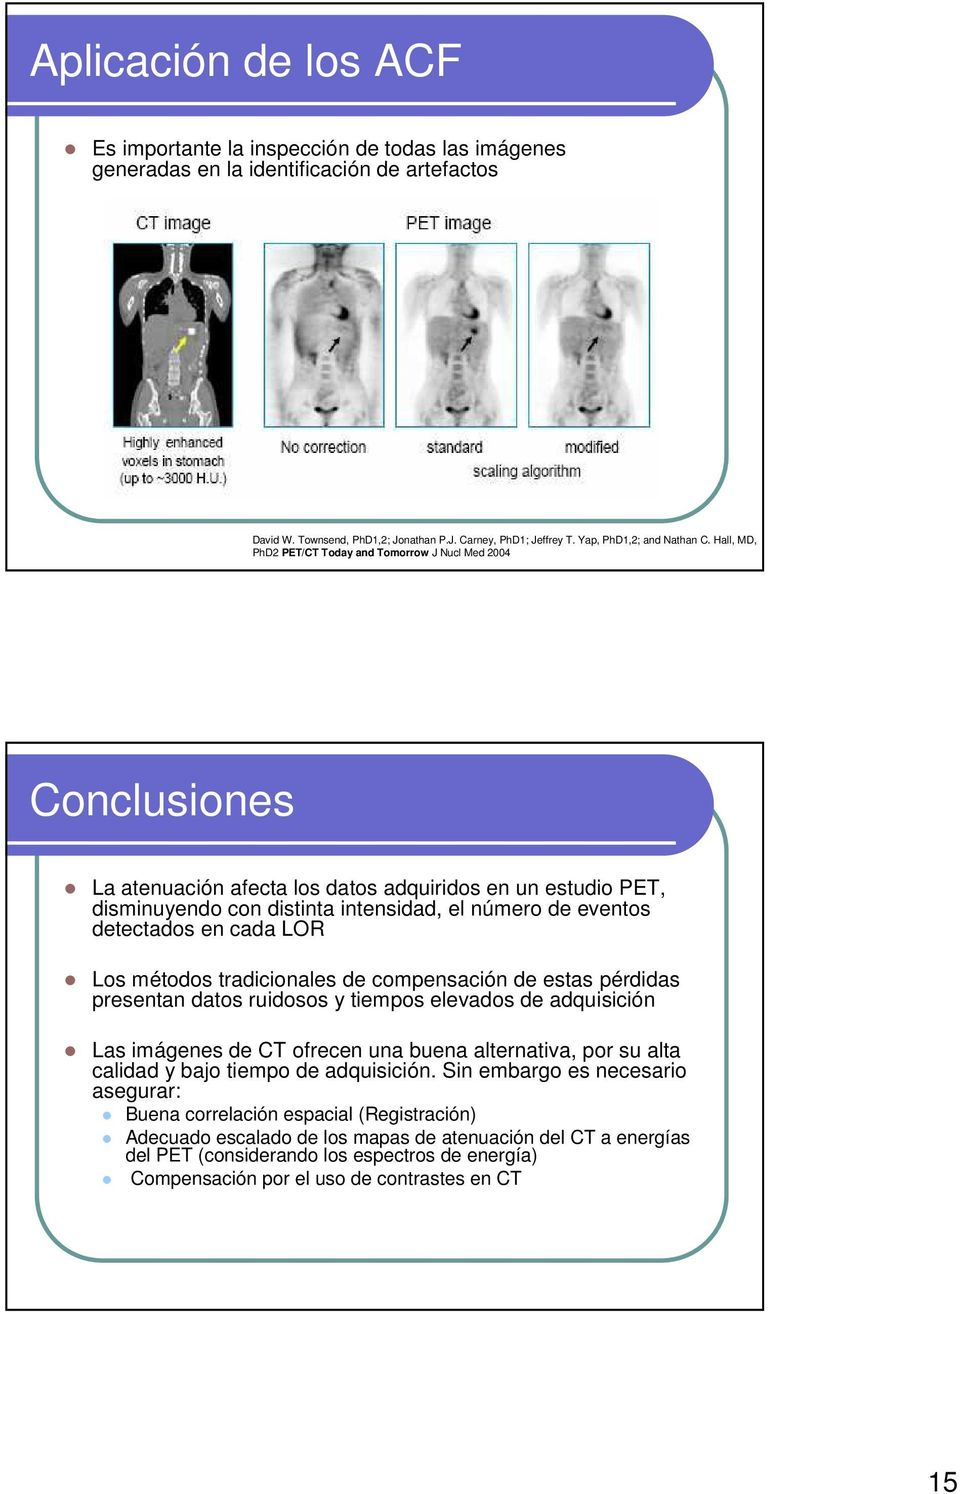 Hall, MD, PhD2 PET/CT Today and Tomorrow J Nucl Med 2004 Conclusiones La atenuación afecta los datos adquiridos en un estudio PET, disminuyendo con distinta intensidad, el número de eventos